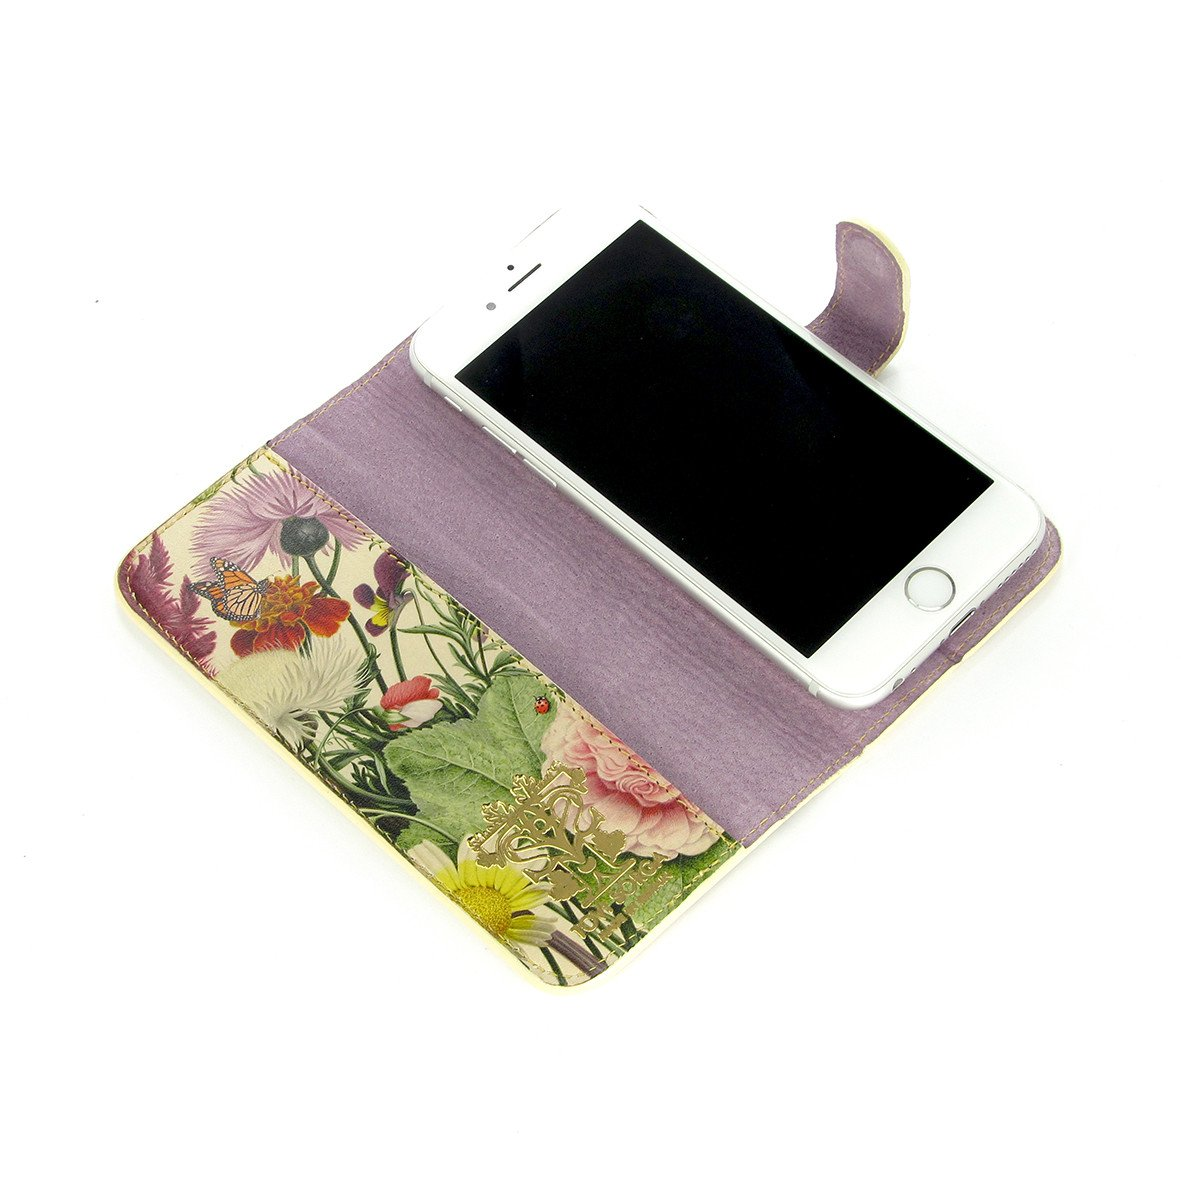 iphone 11 flip case - Leather Phone Case - English Summer Phone case - Mixed flower print phone case - Cream - wild flower print - Beautiful Floral print - Flowers